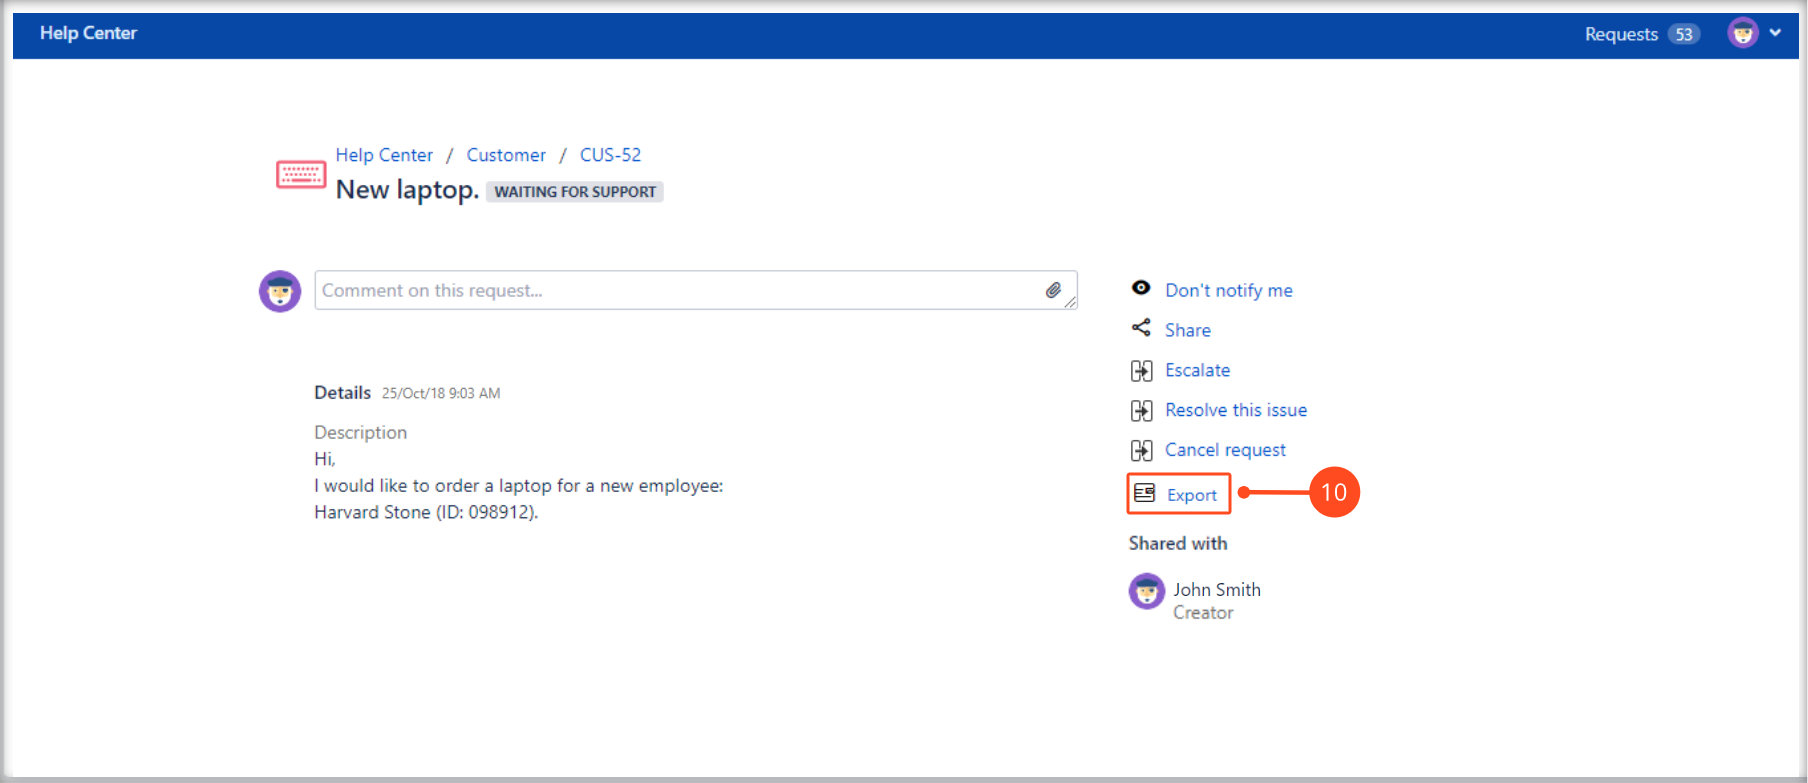 Now you can create Jira Service Management requests with Export Issue configuration in the request details view on the Customer Portal